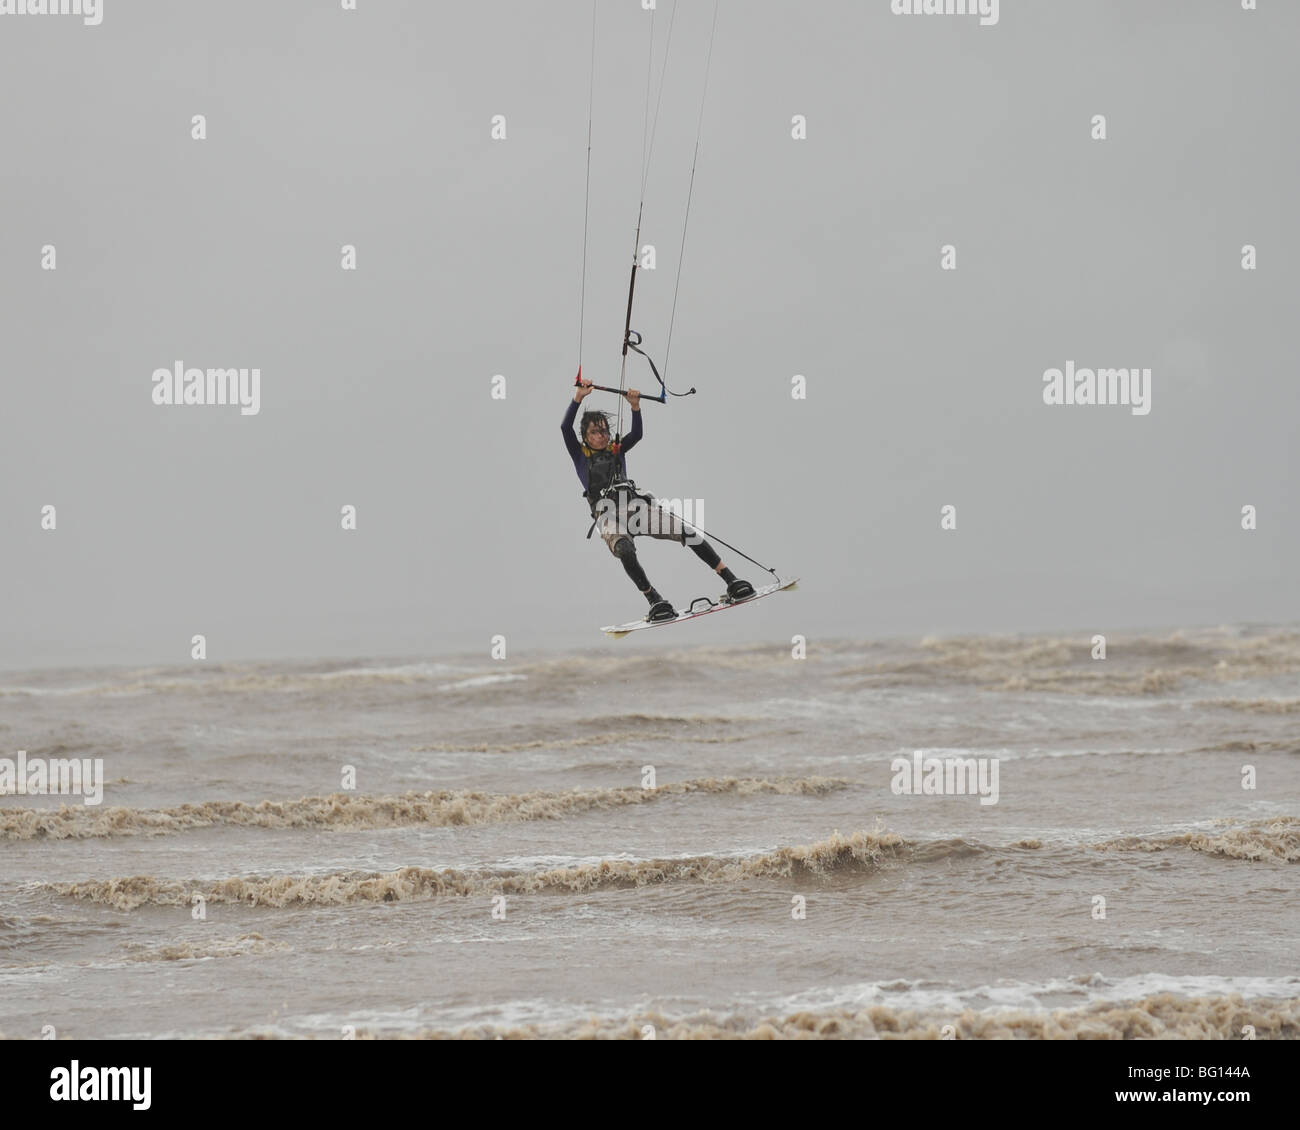 kite surfer leaping the waves - Stock Image